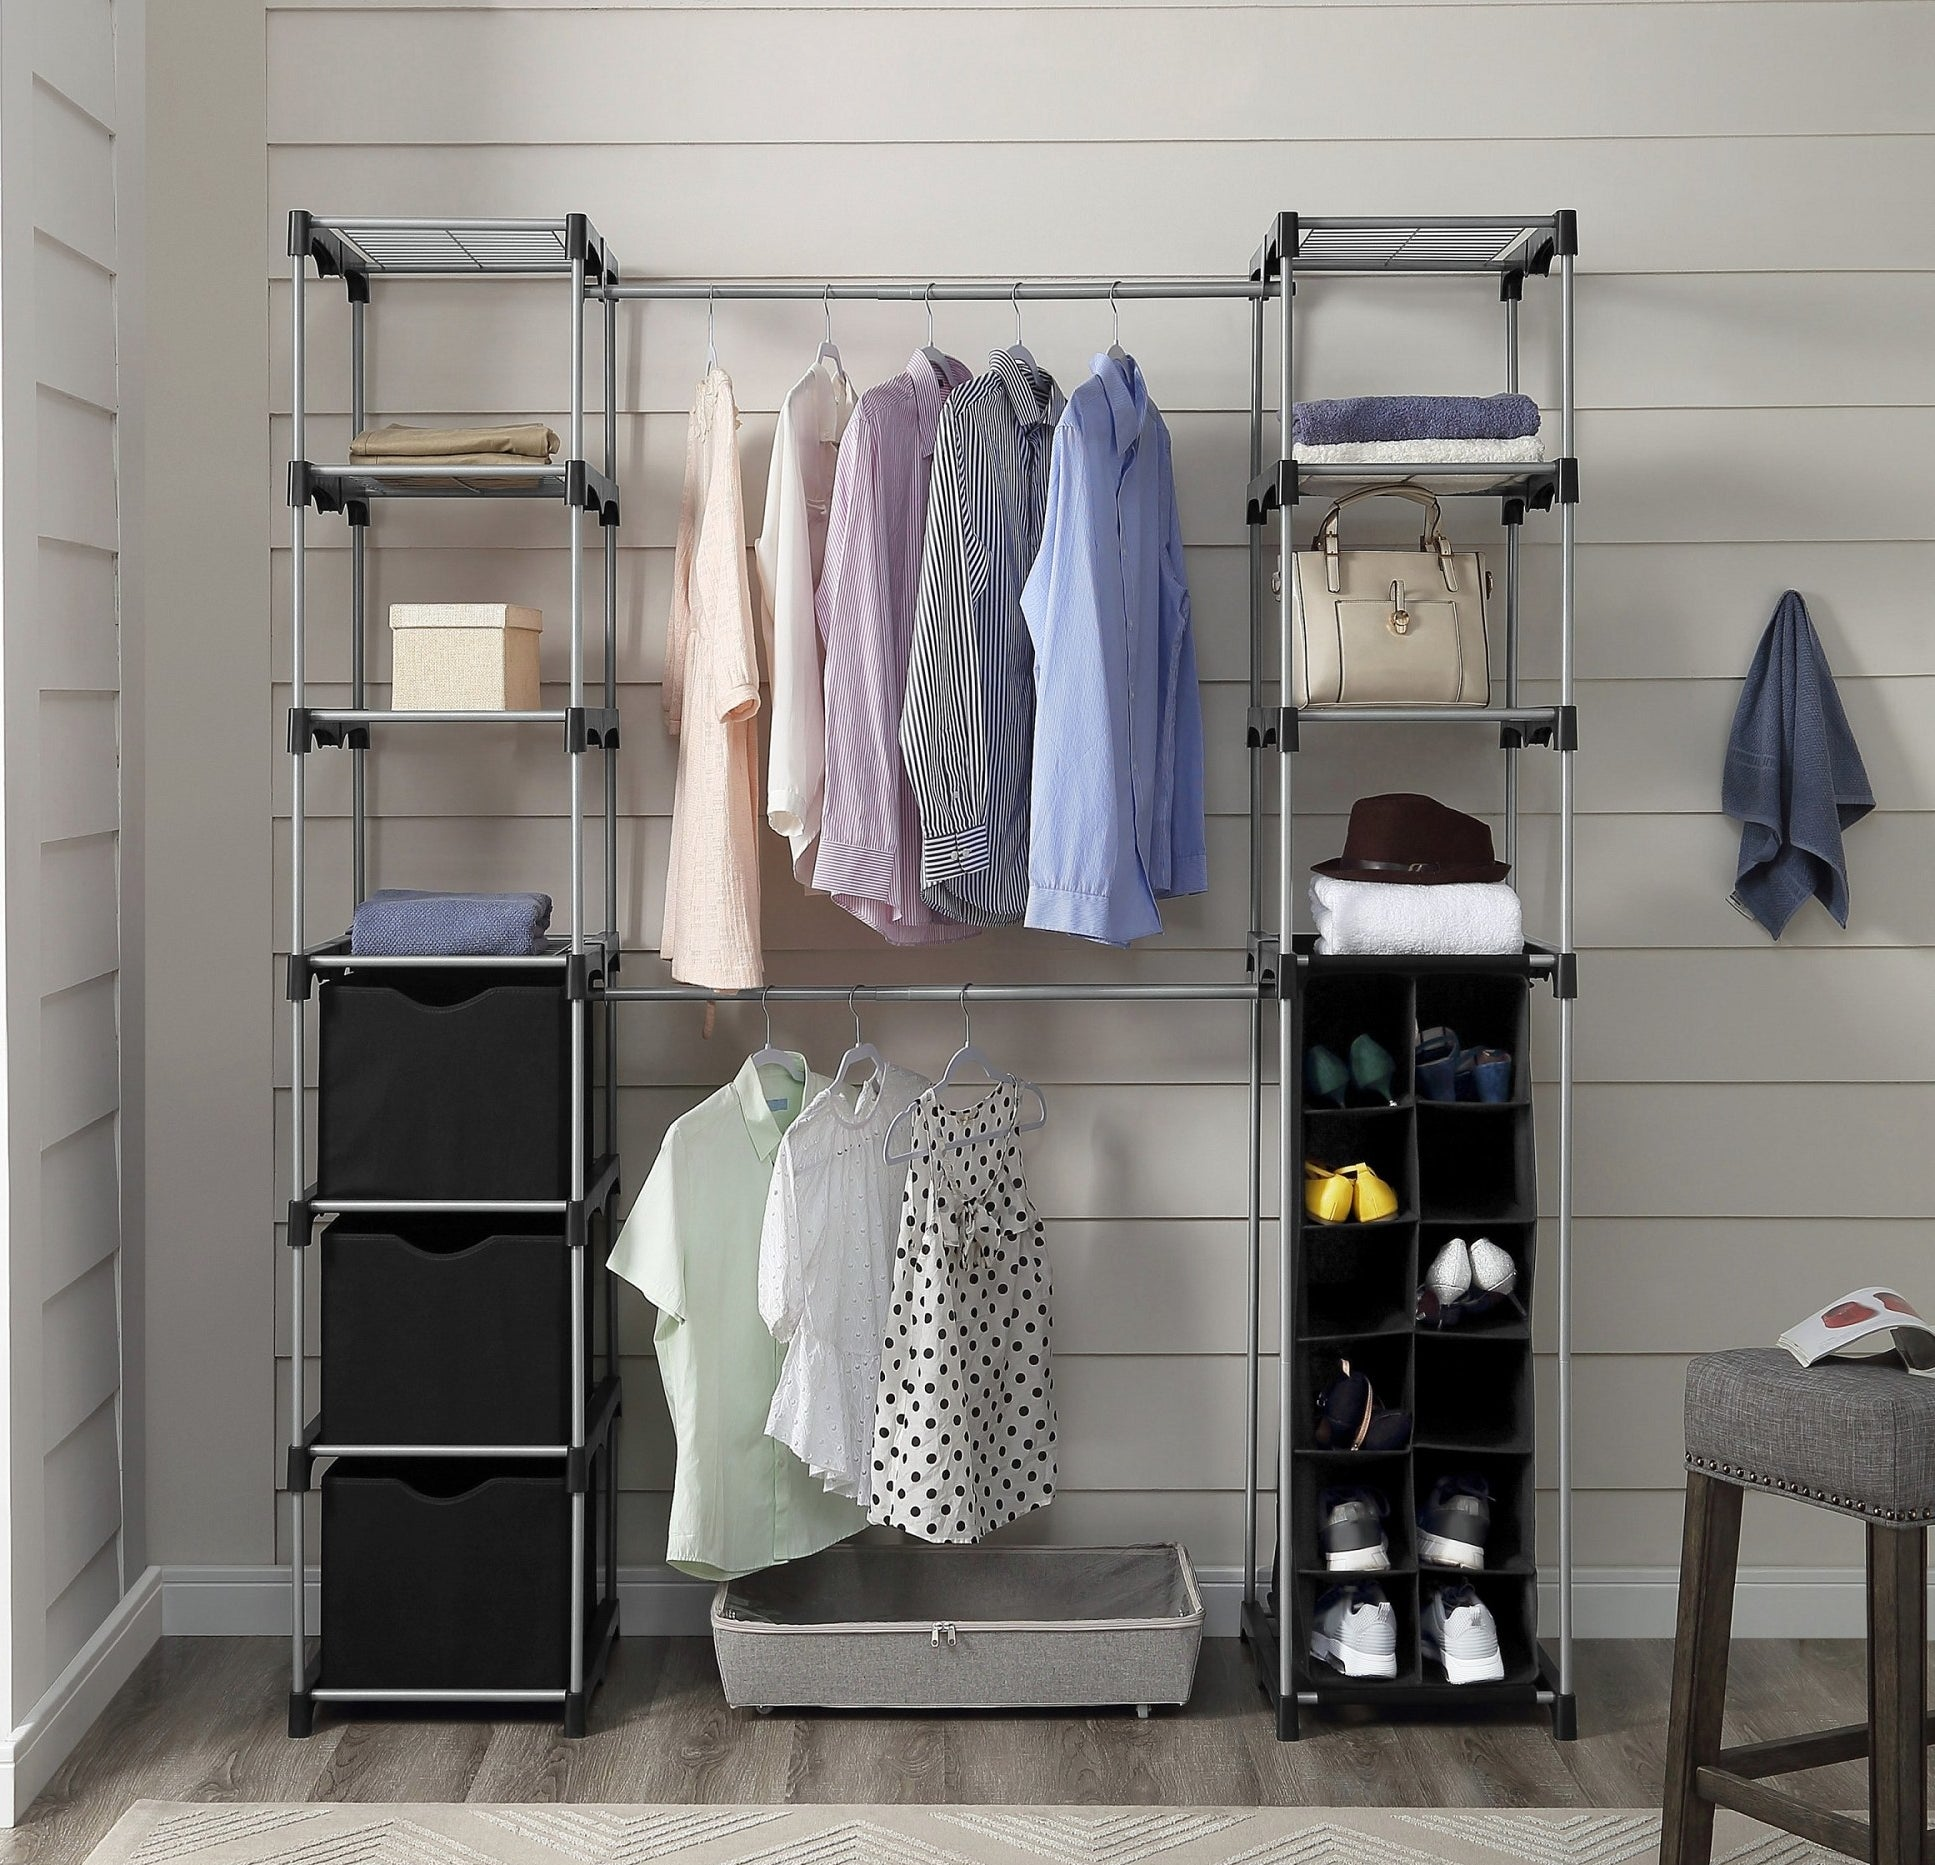 The closet system with shoes, clothes, and accessories